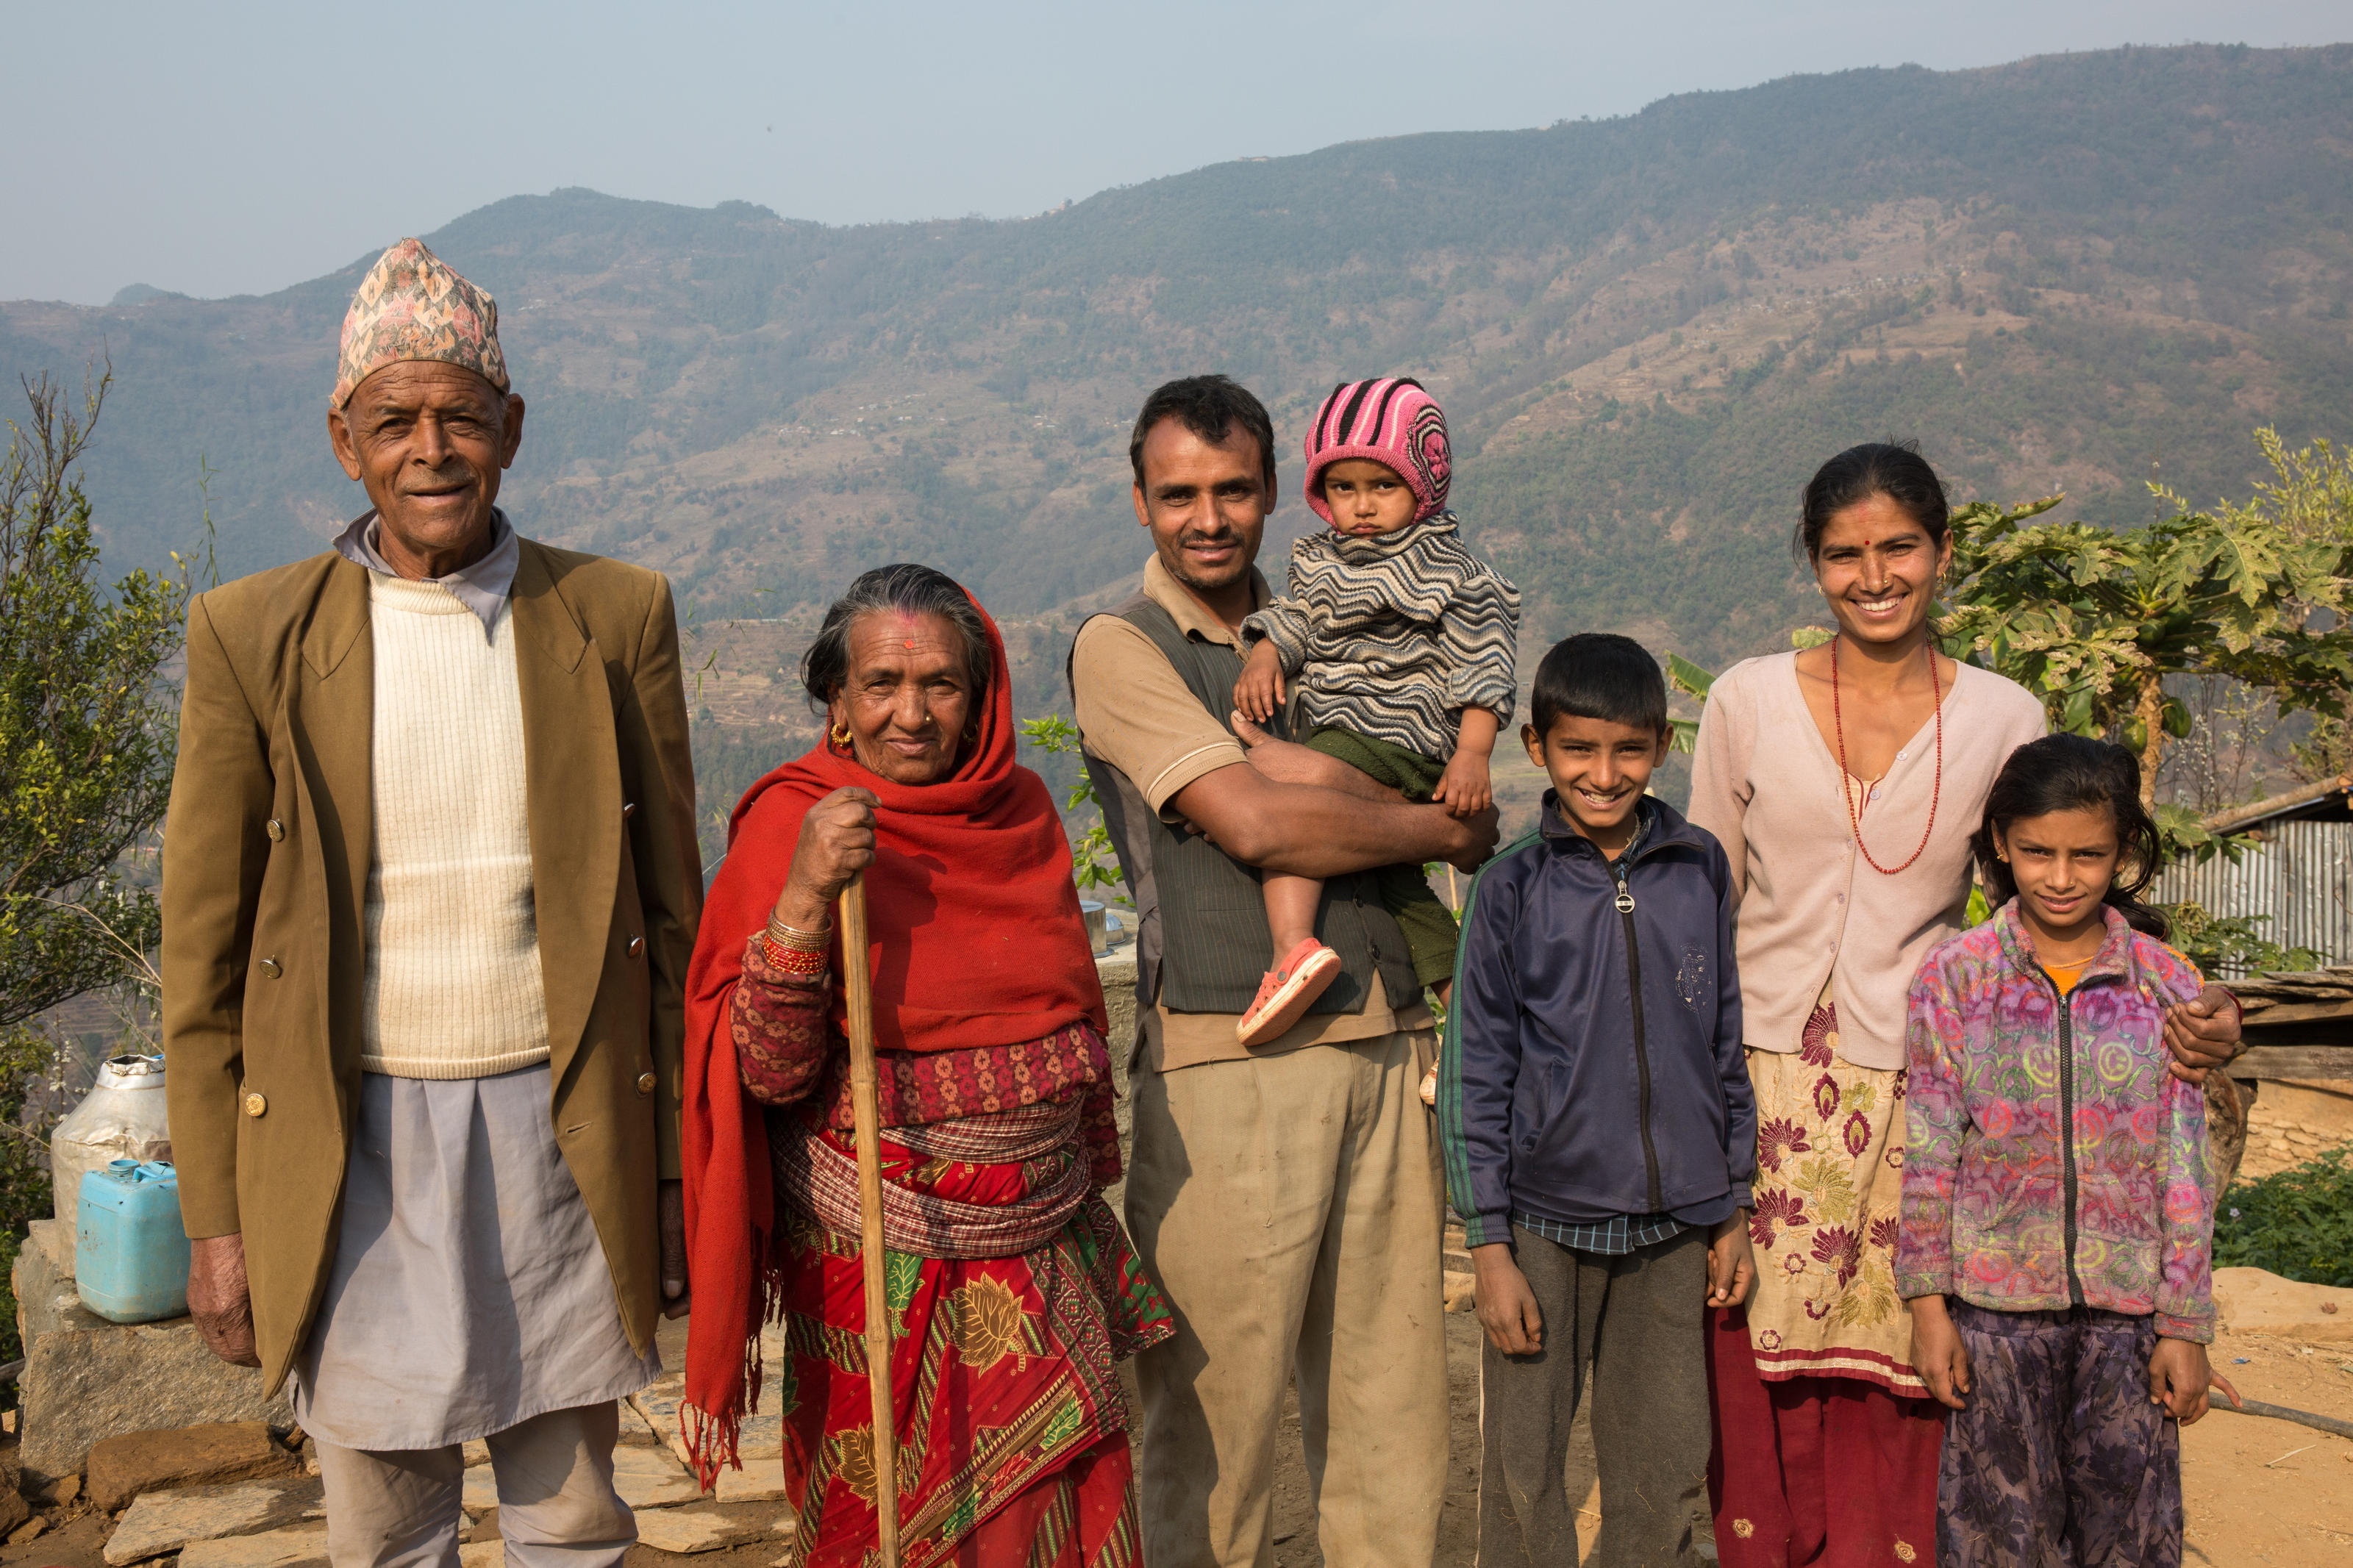 Humnath with his family. Gorkha, Nepal.